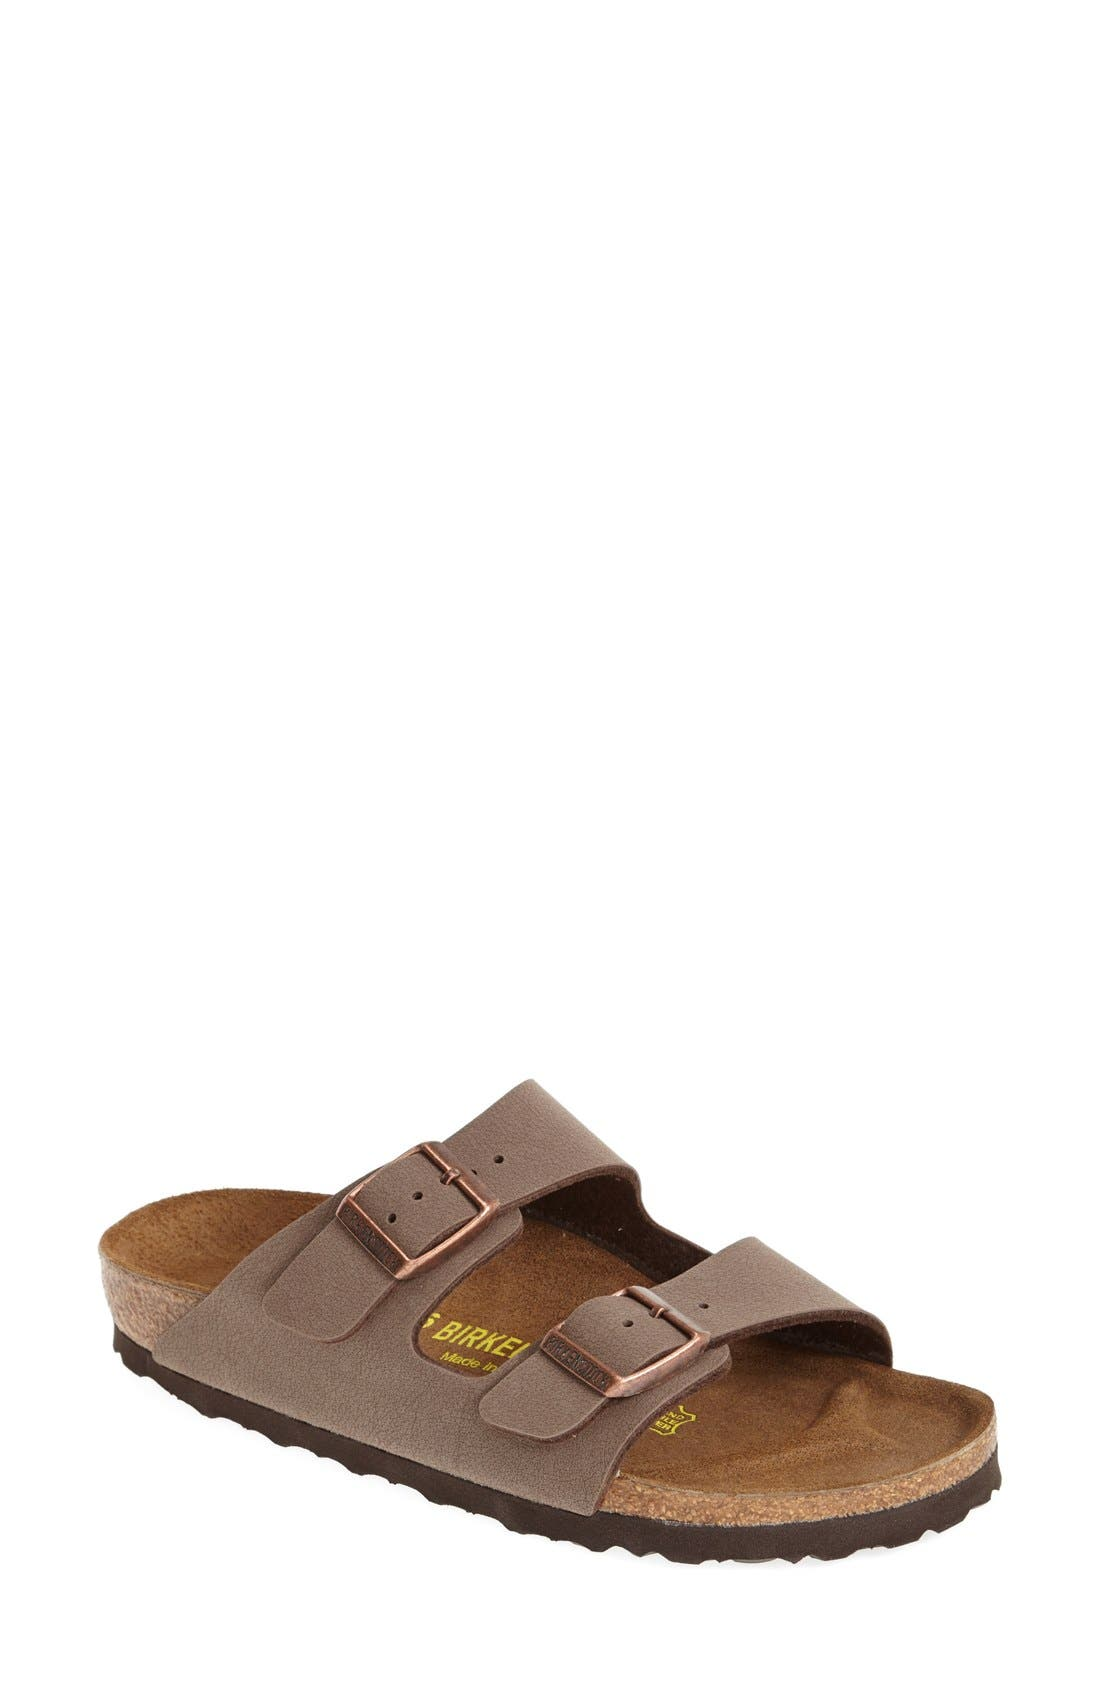 Alternate Image 1 Selected - Birkenstock Arizona Birko-Flor Sandal (Women)